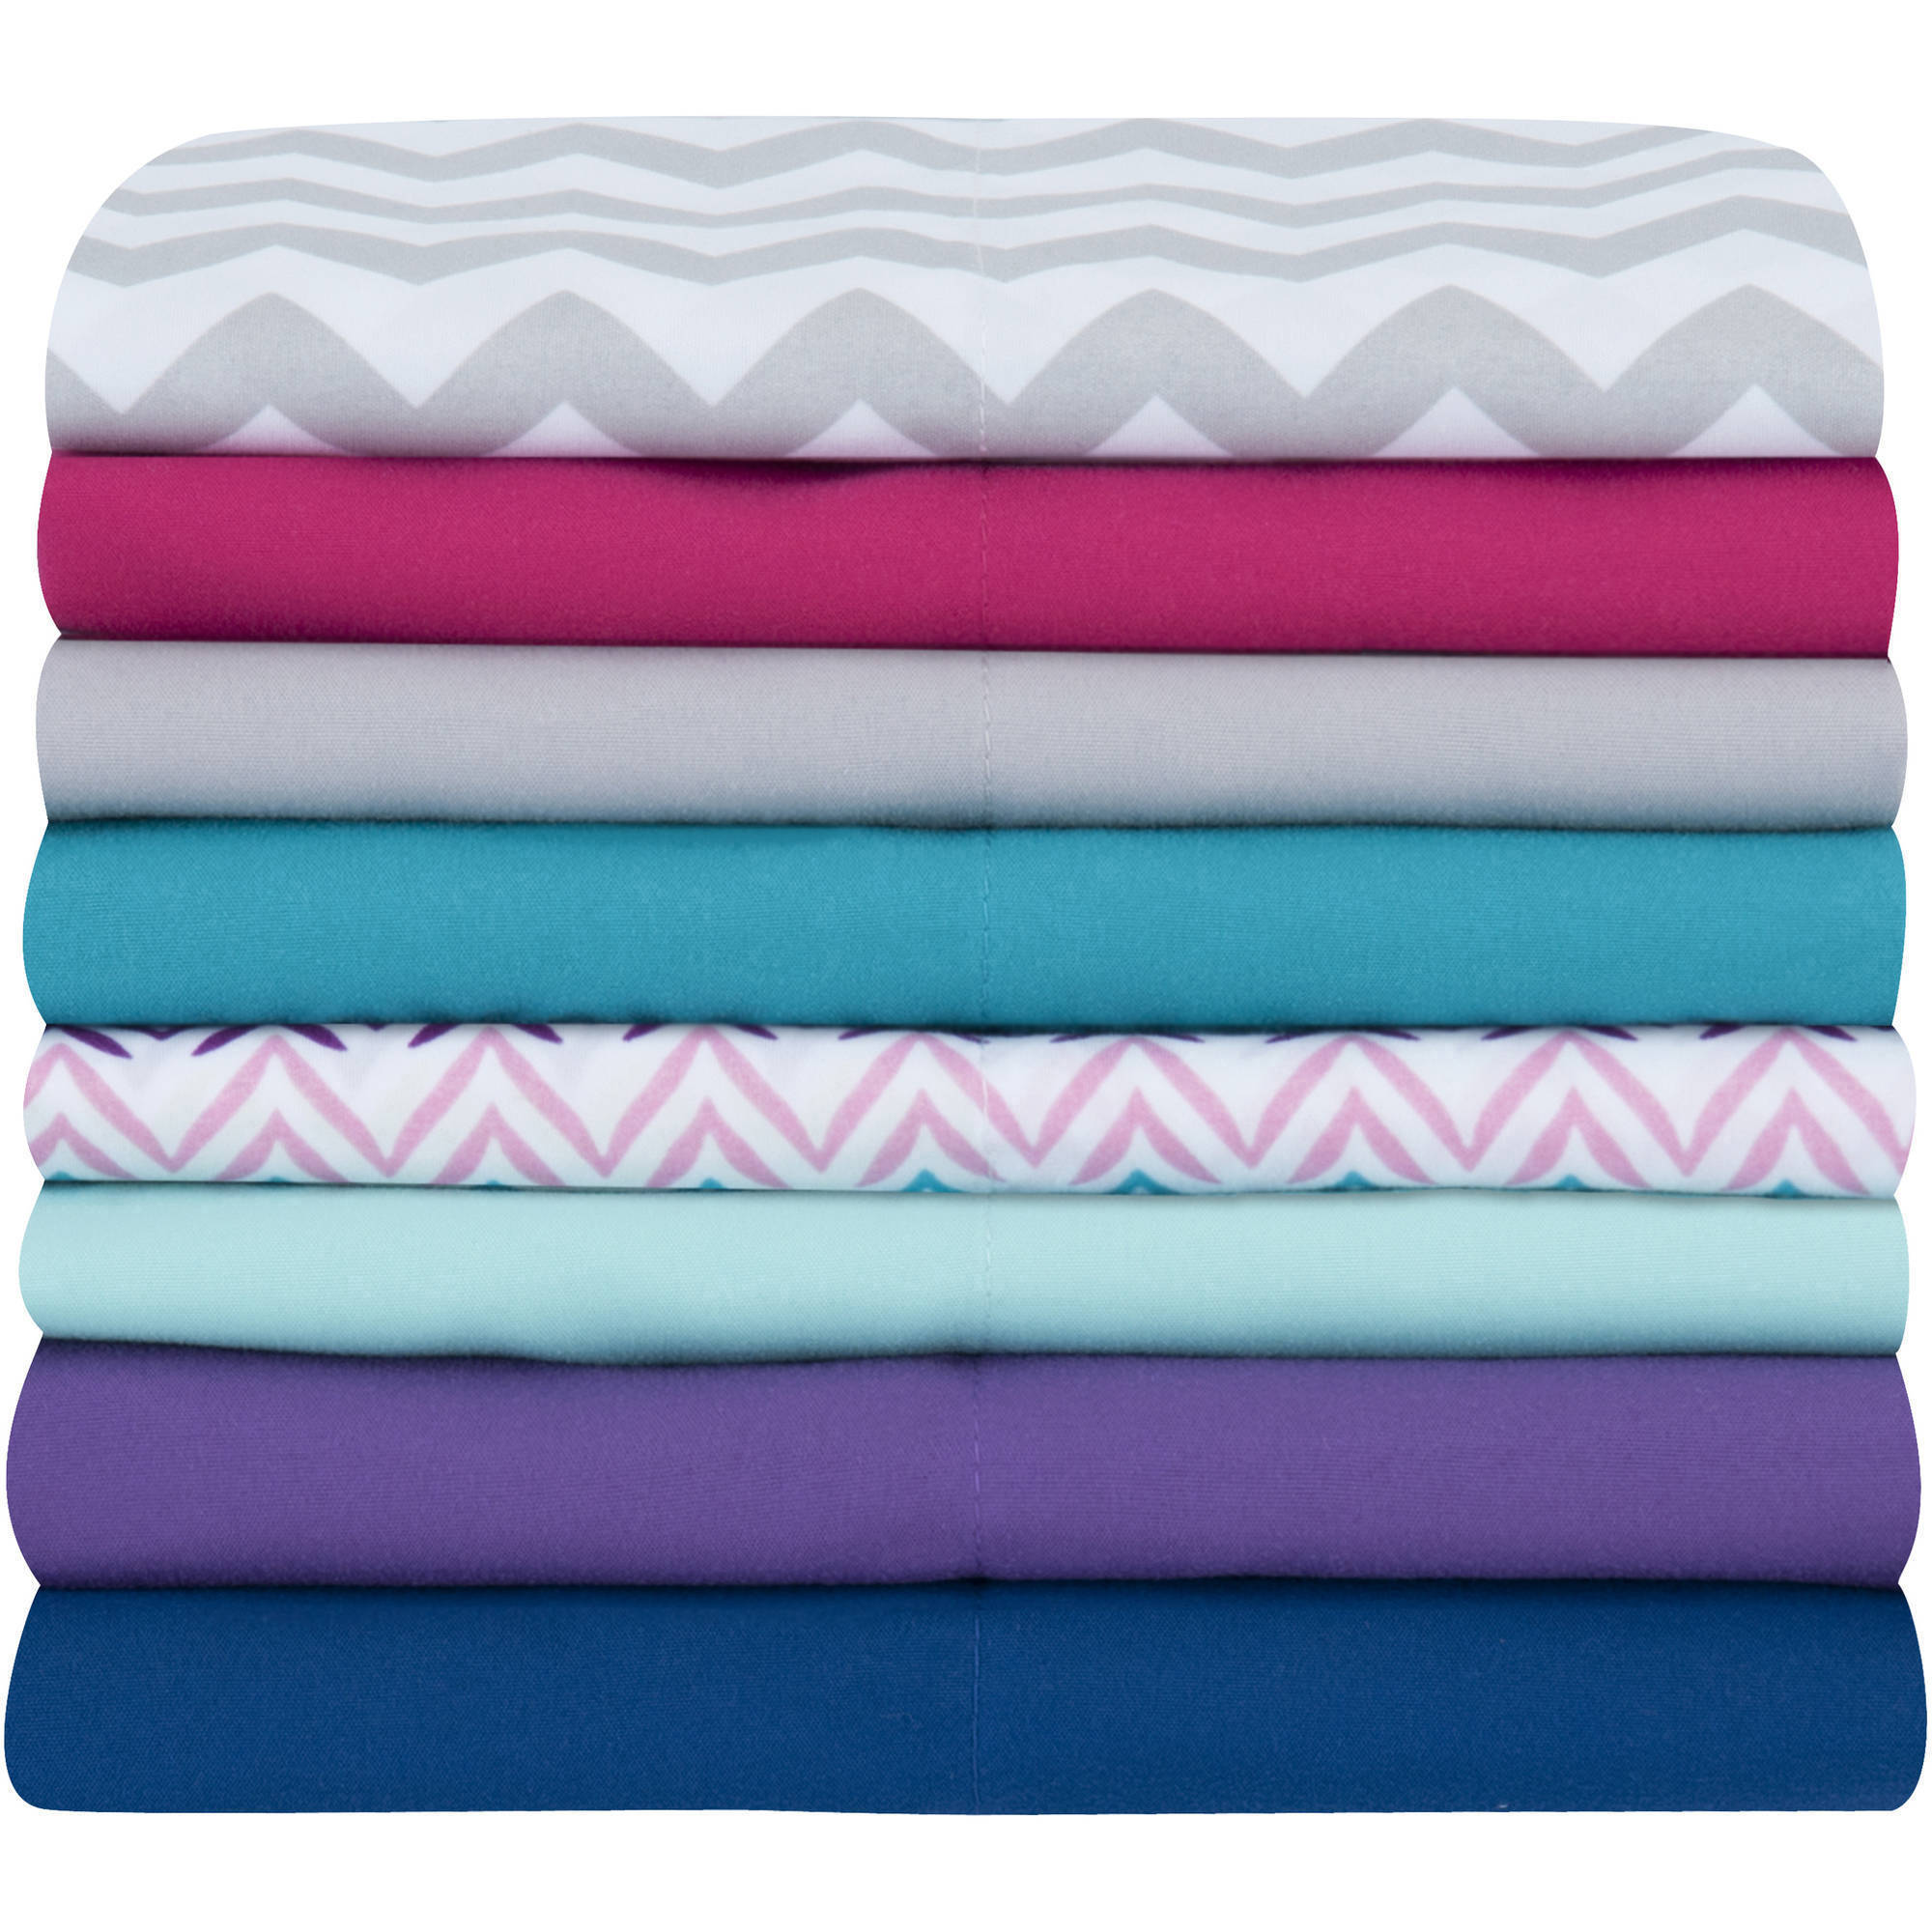 Kids' Sheets & Pillow Cases